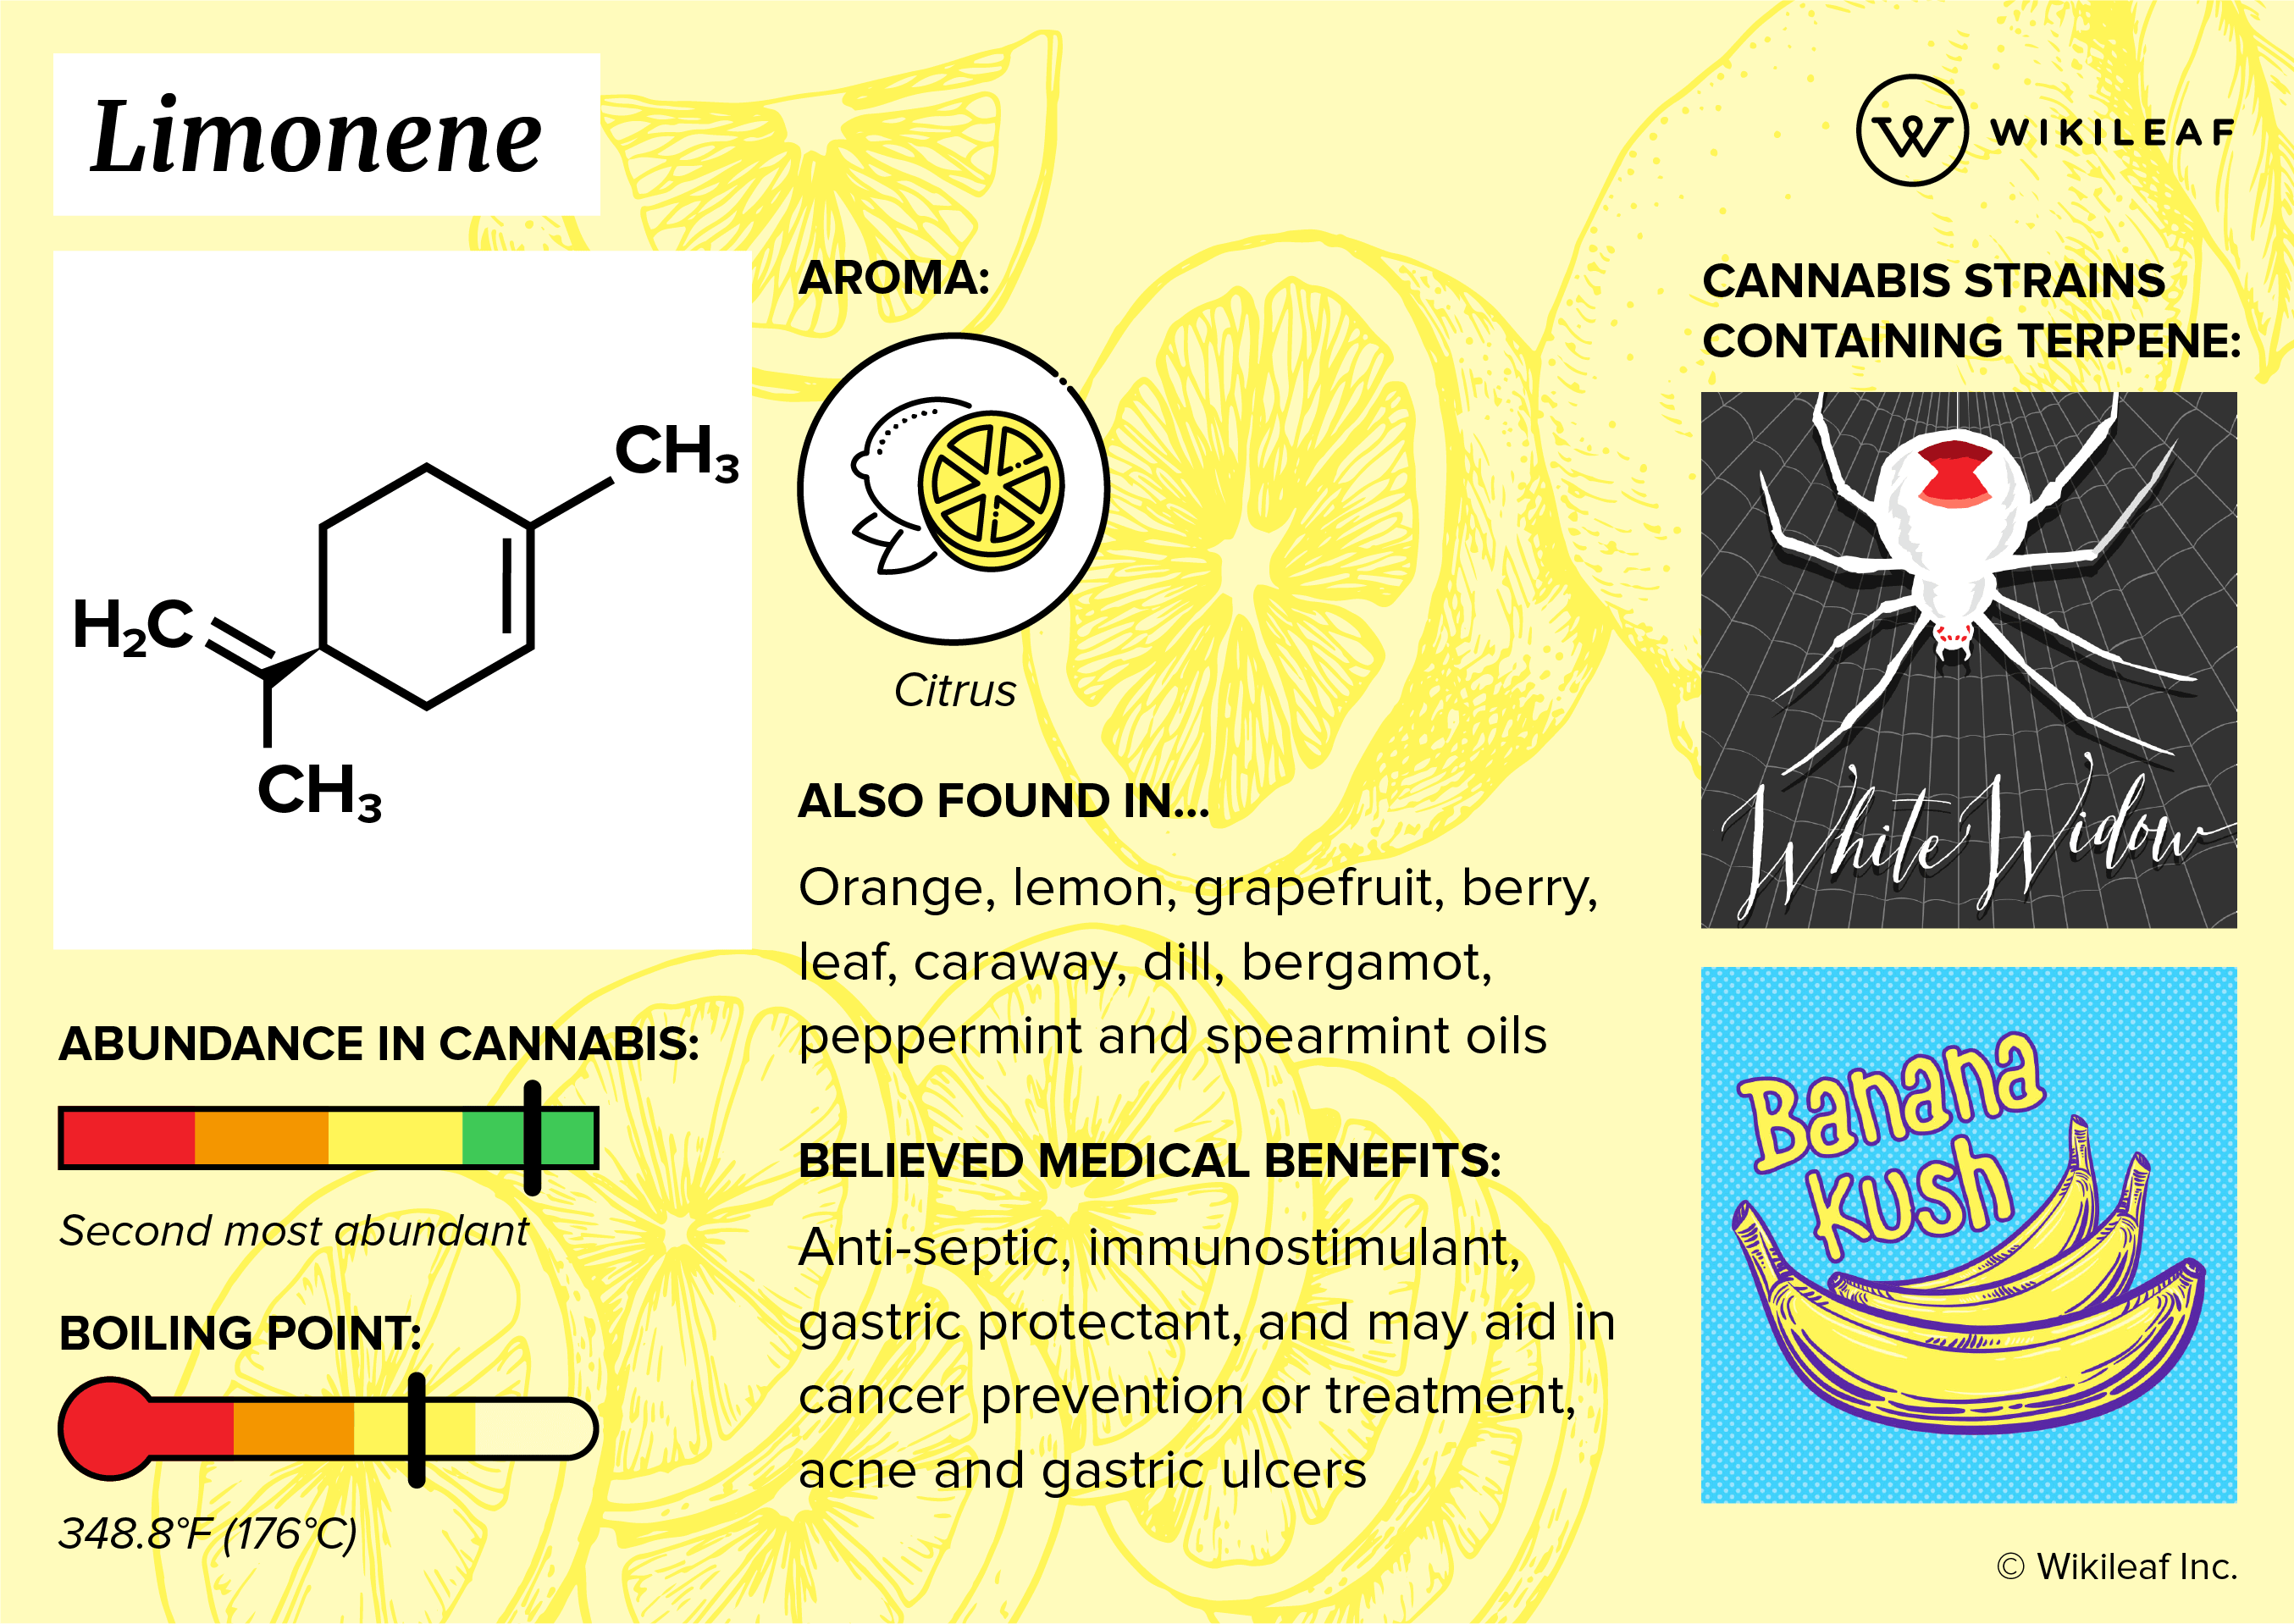 A limonene terpene infographic that explains its benefits, aroma, and cannabis strains high in limonene